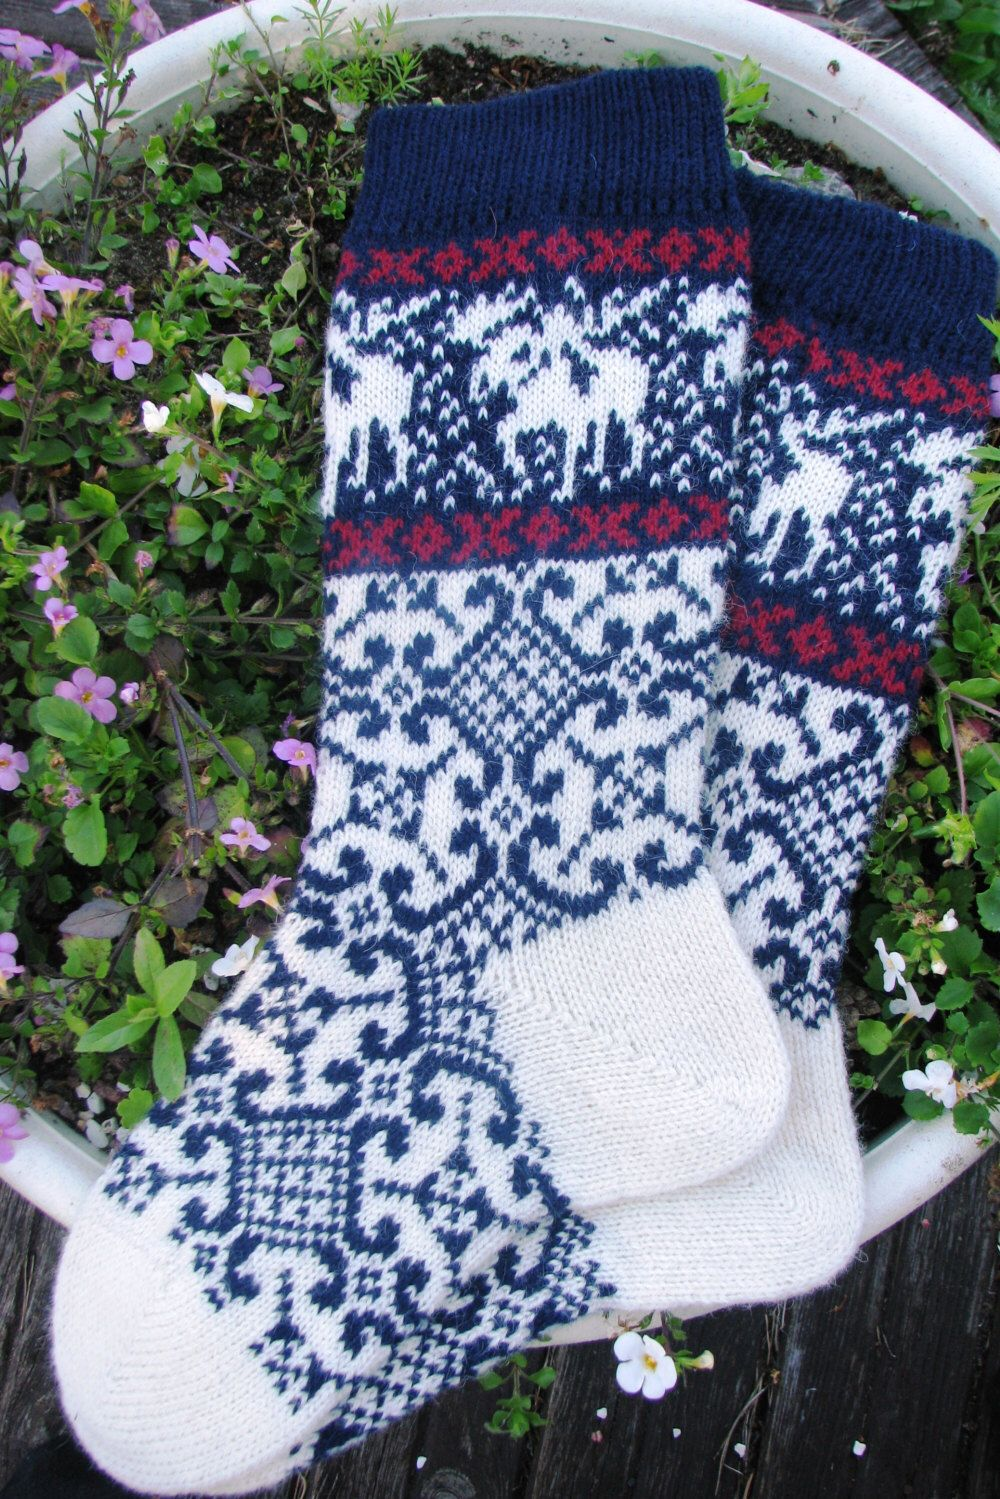 Knit socks wool socks knitted socks norwegian socks christmas knit socks wool socks knitted socks norwegian socks christmas socks winter socks warm socks gift to bankloansurffo Image collections